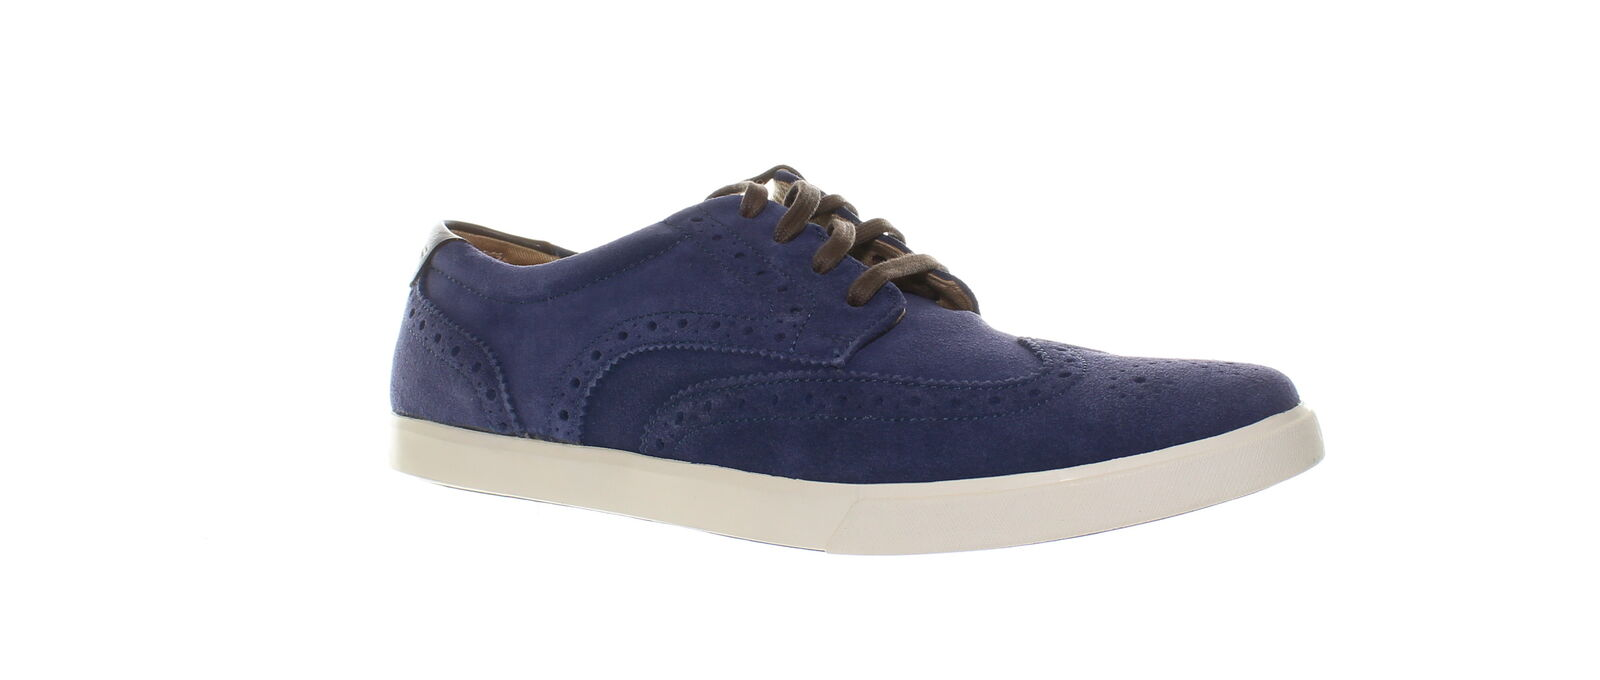 Cole Haan Joshua pour Homme mode paniers Taille 9.5 (407625)